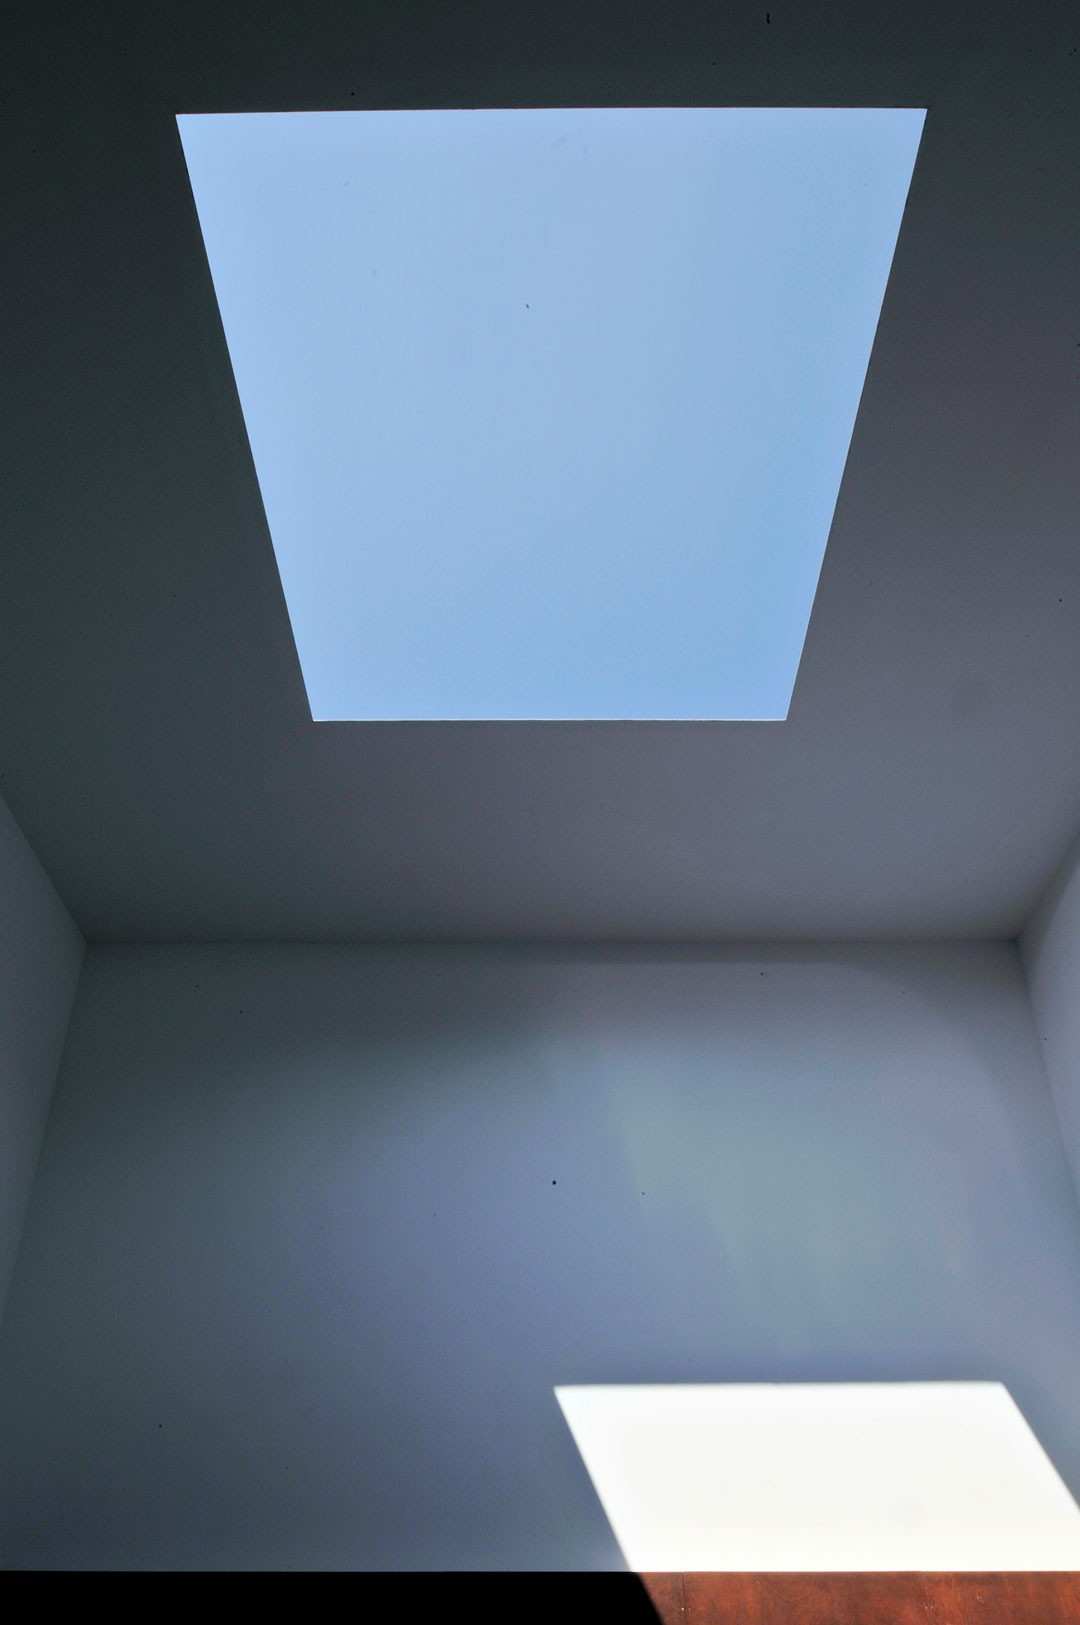 <BODY>Skyspace <em>The other Horizon</em> © Wolfgang Woessner/MAK</BODY>